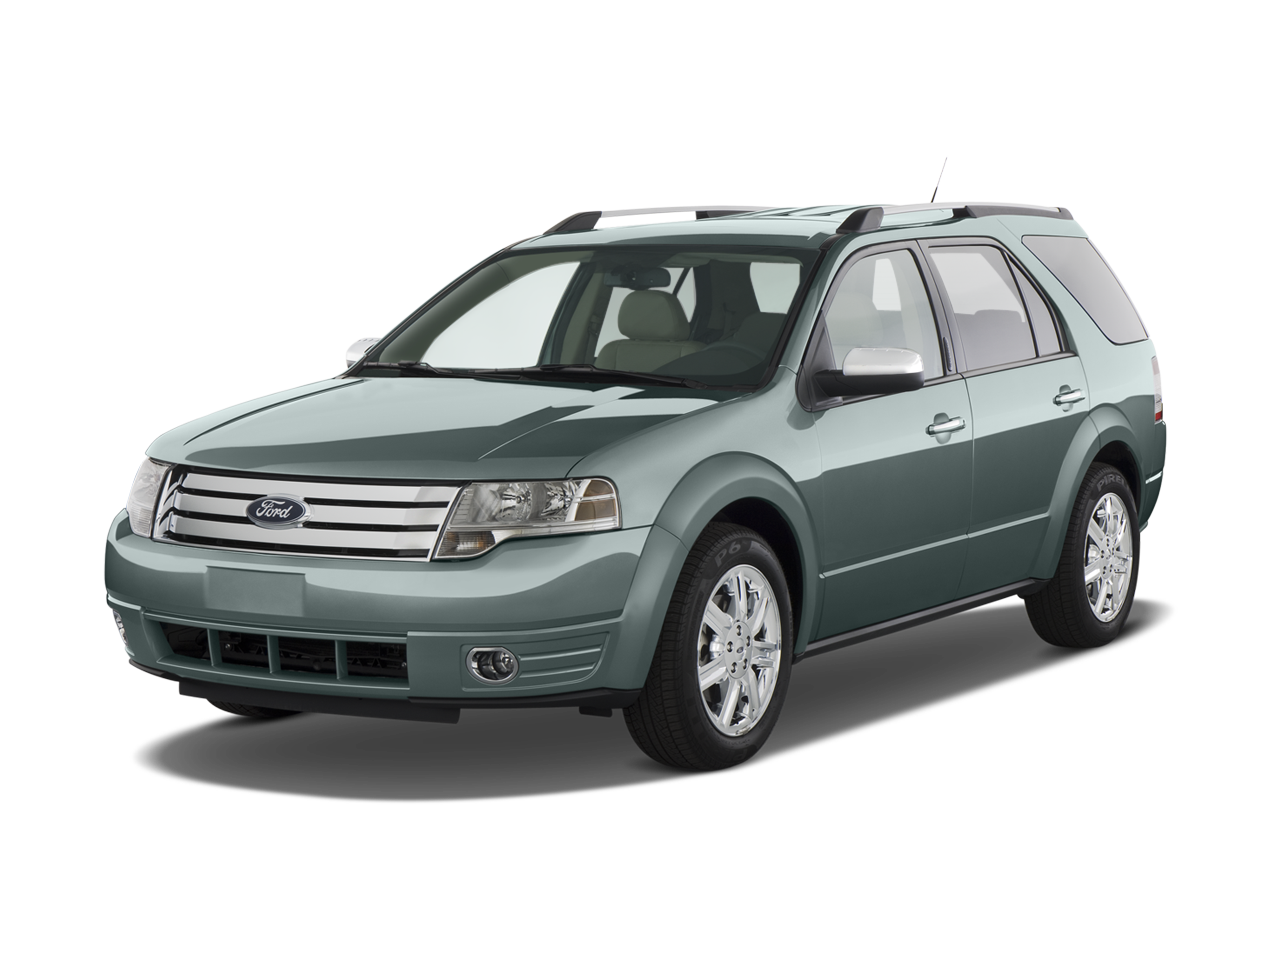 2008 ford taurus x awd limited ford midsize wagon review. Black Bedroom Furniture Sets. Home Design Ideas